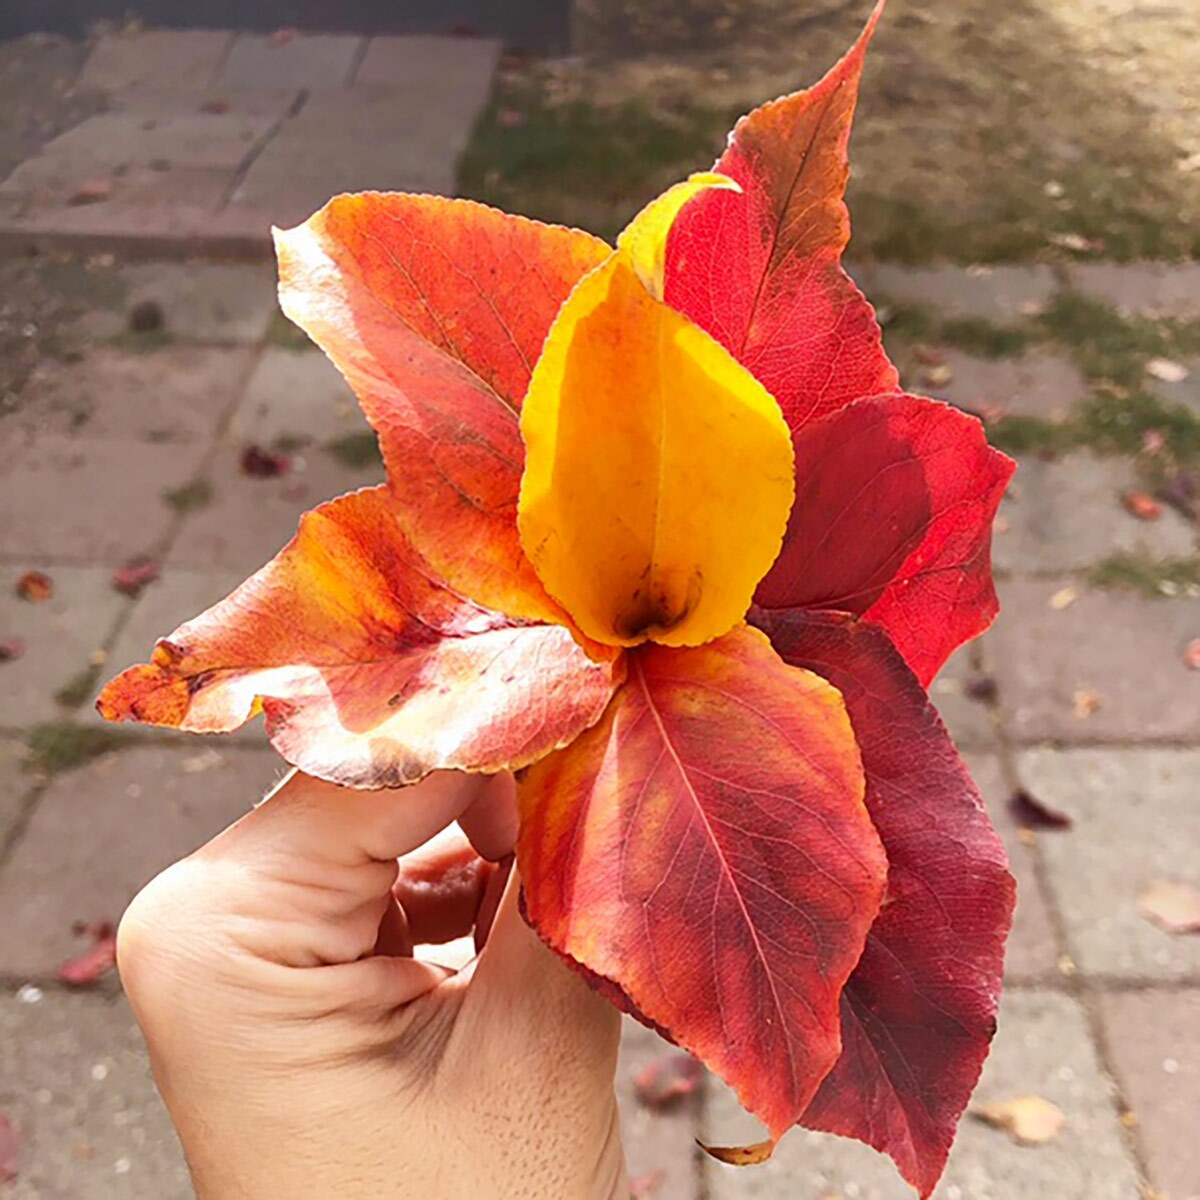 A hand holds a small bouquet of fall leaves.